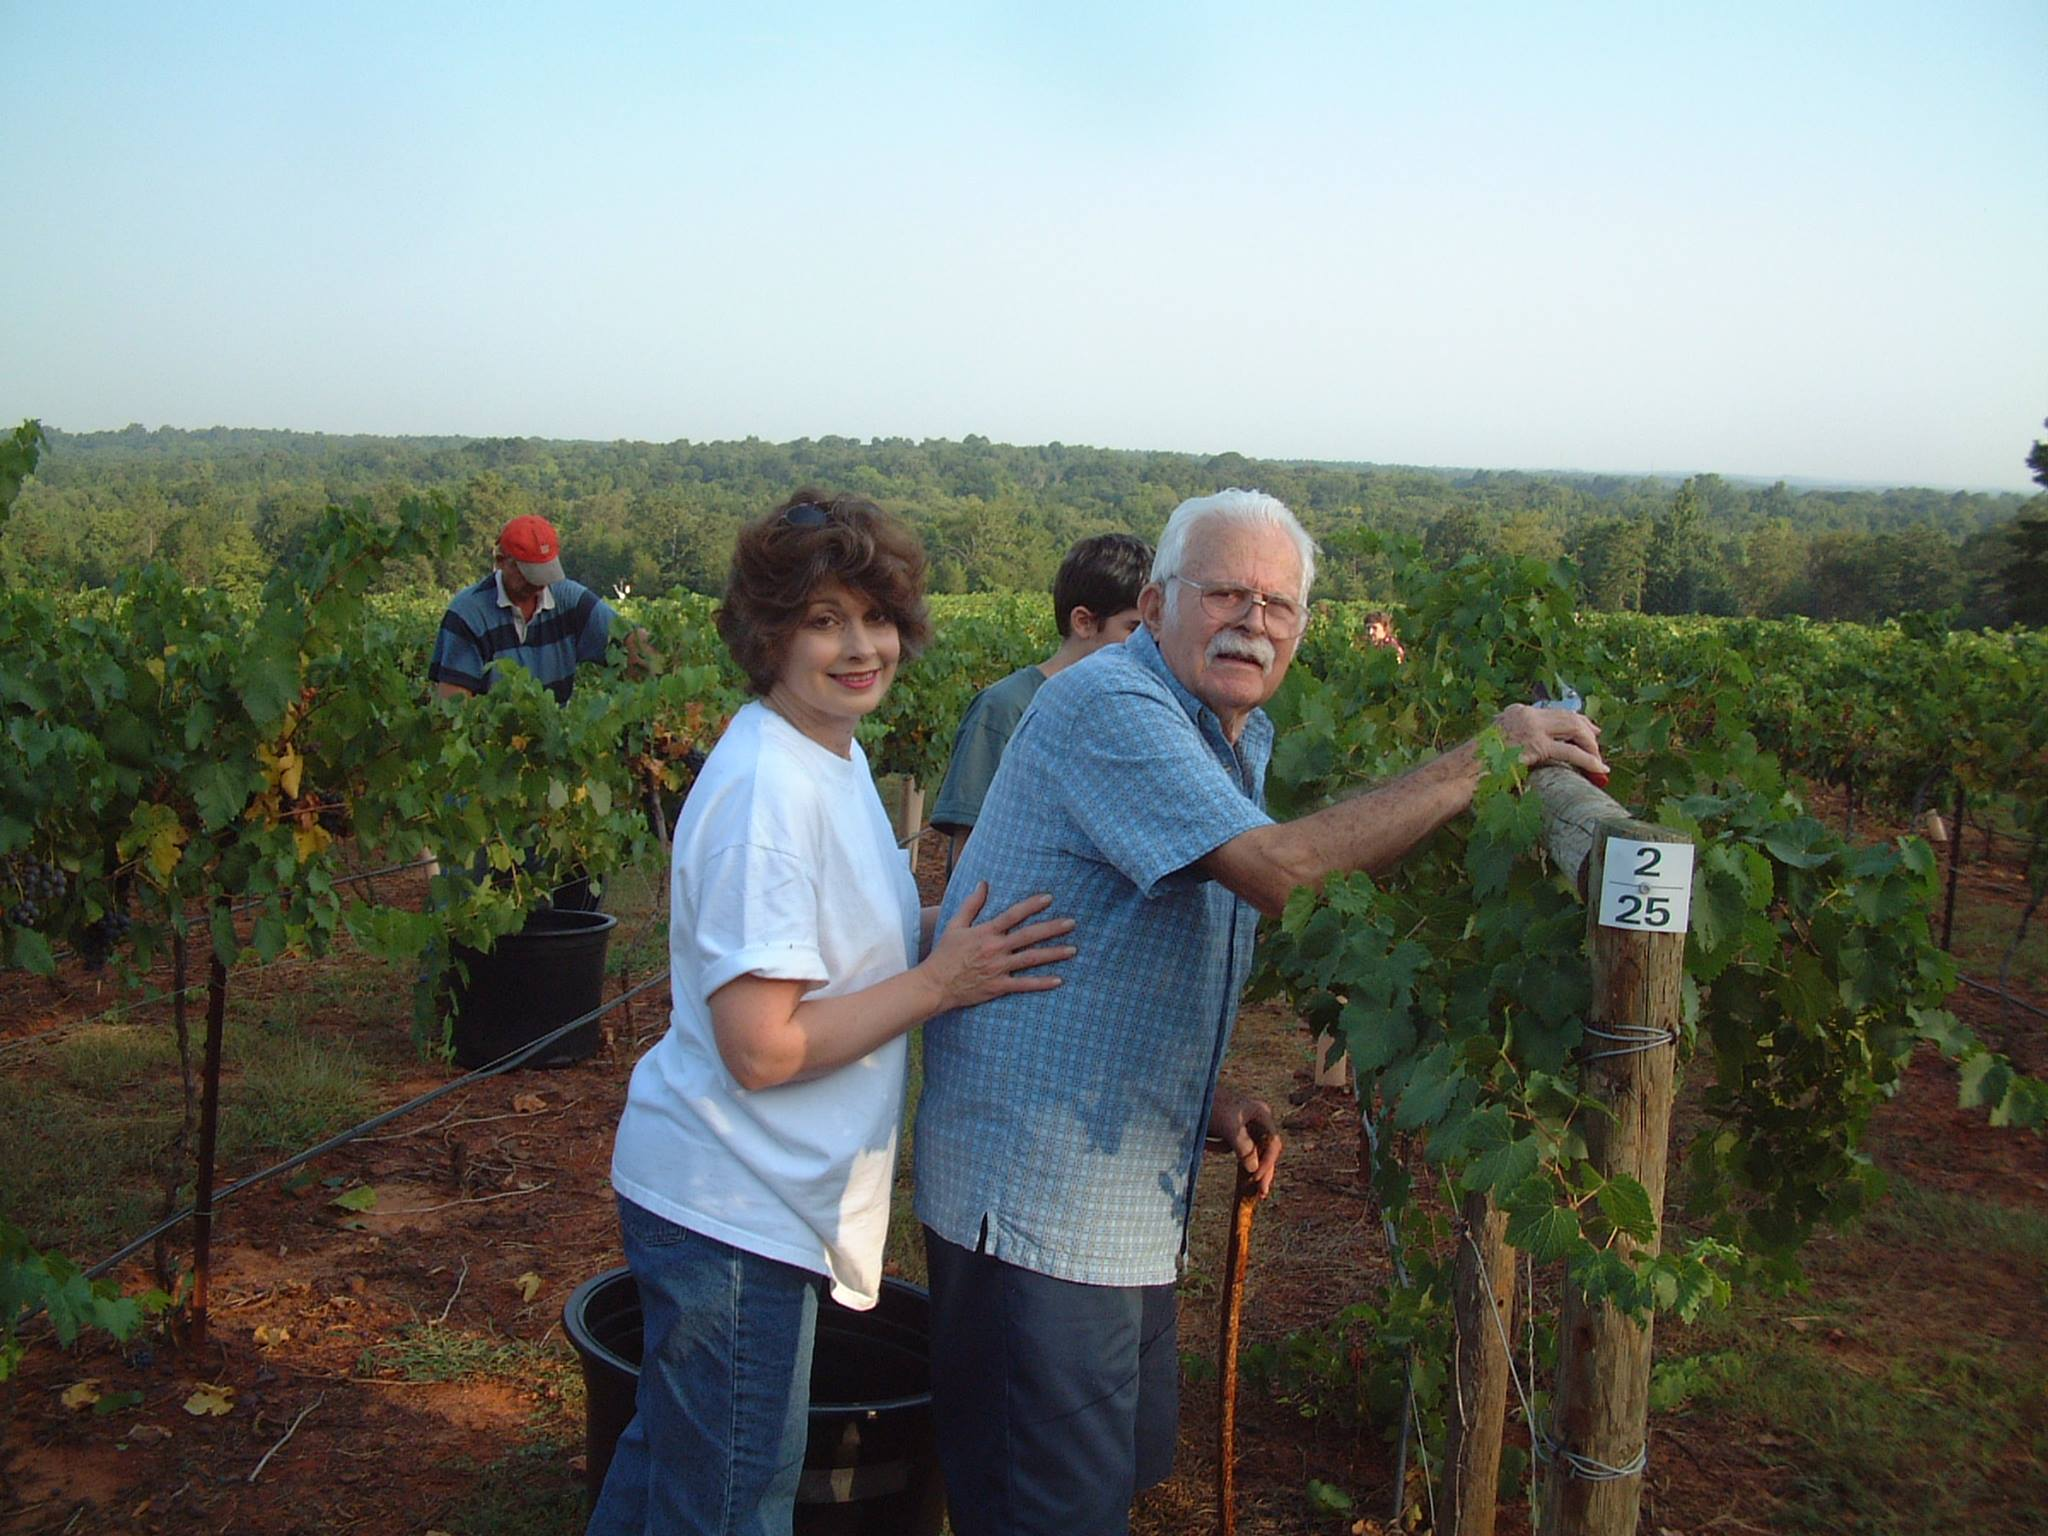 Harvest in the vineyard is a family affair